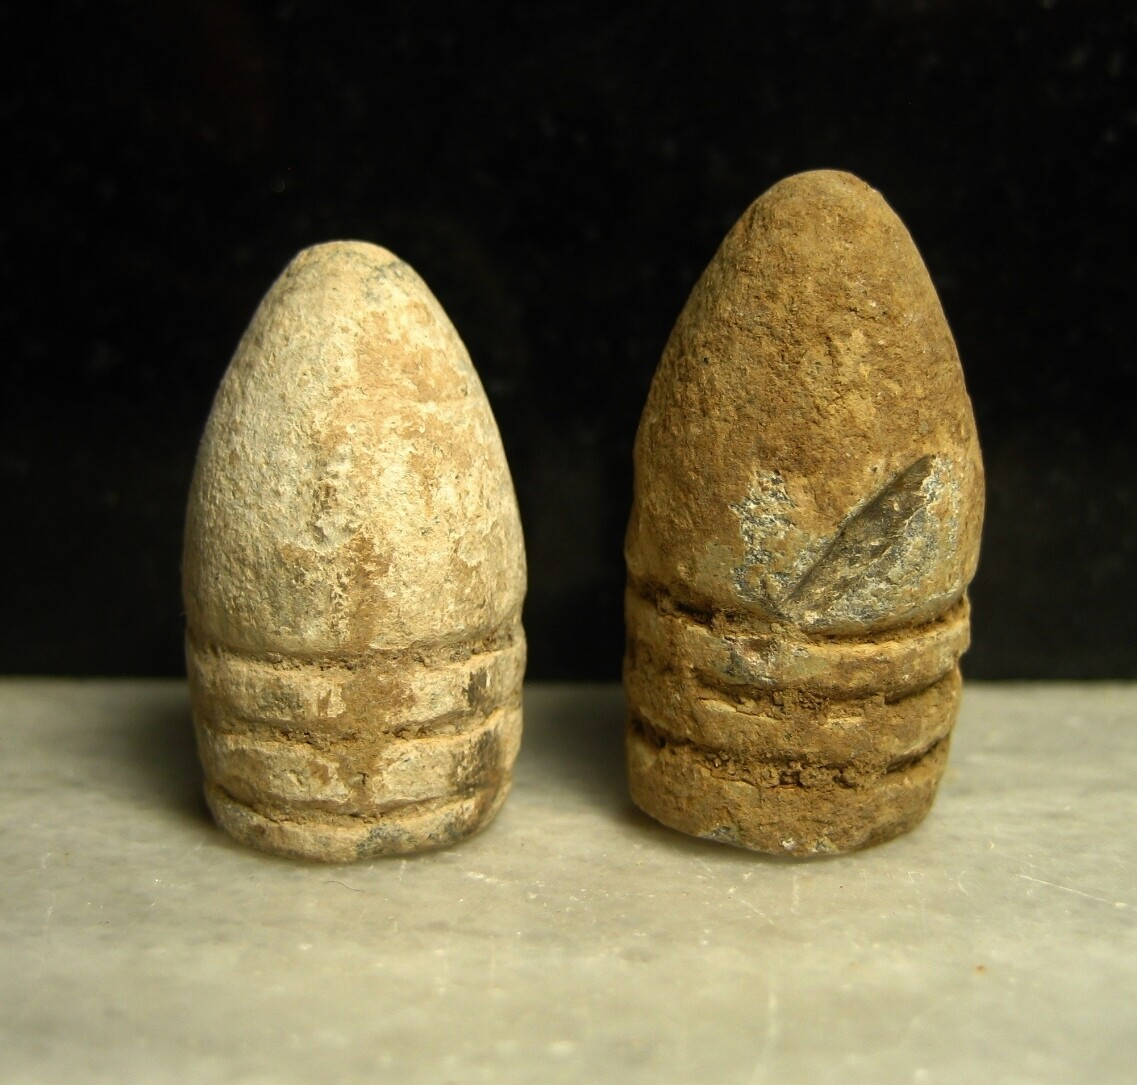 JUST ADDED ON 3/24 - THE BATTLE OF CHANCELLORSVILLE - Two .58 Caliber Bullets - One Variant Possibly Confederate